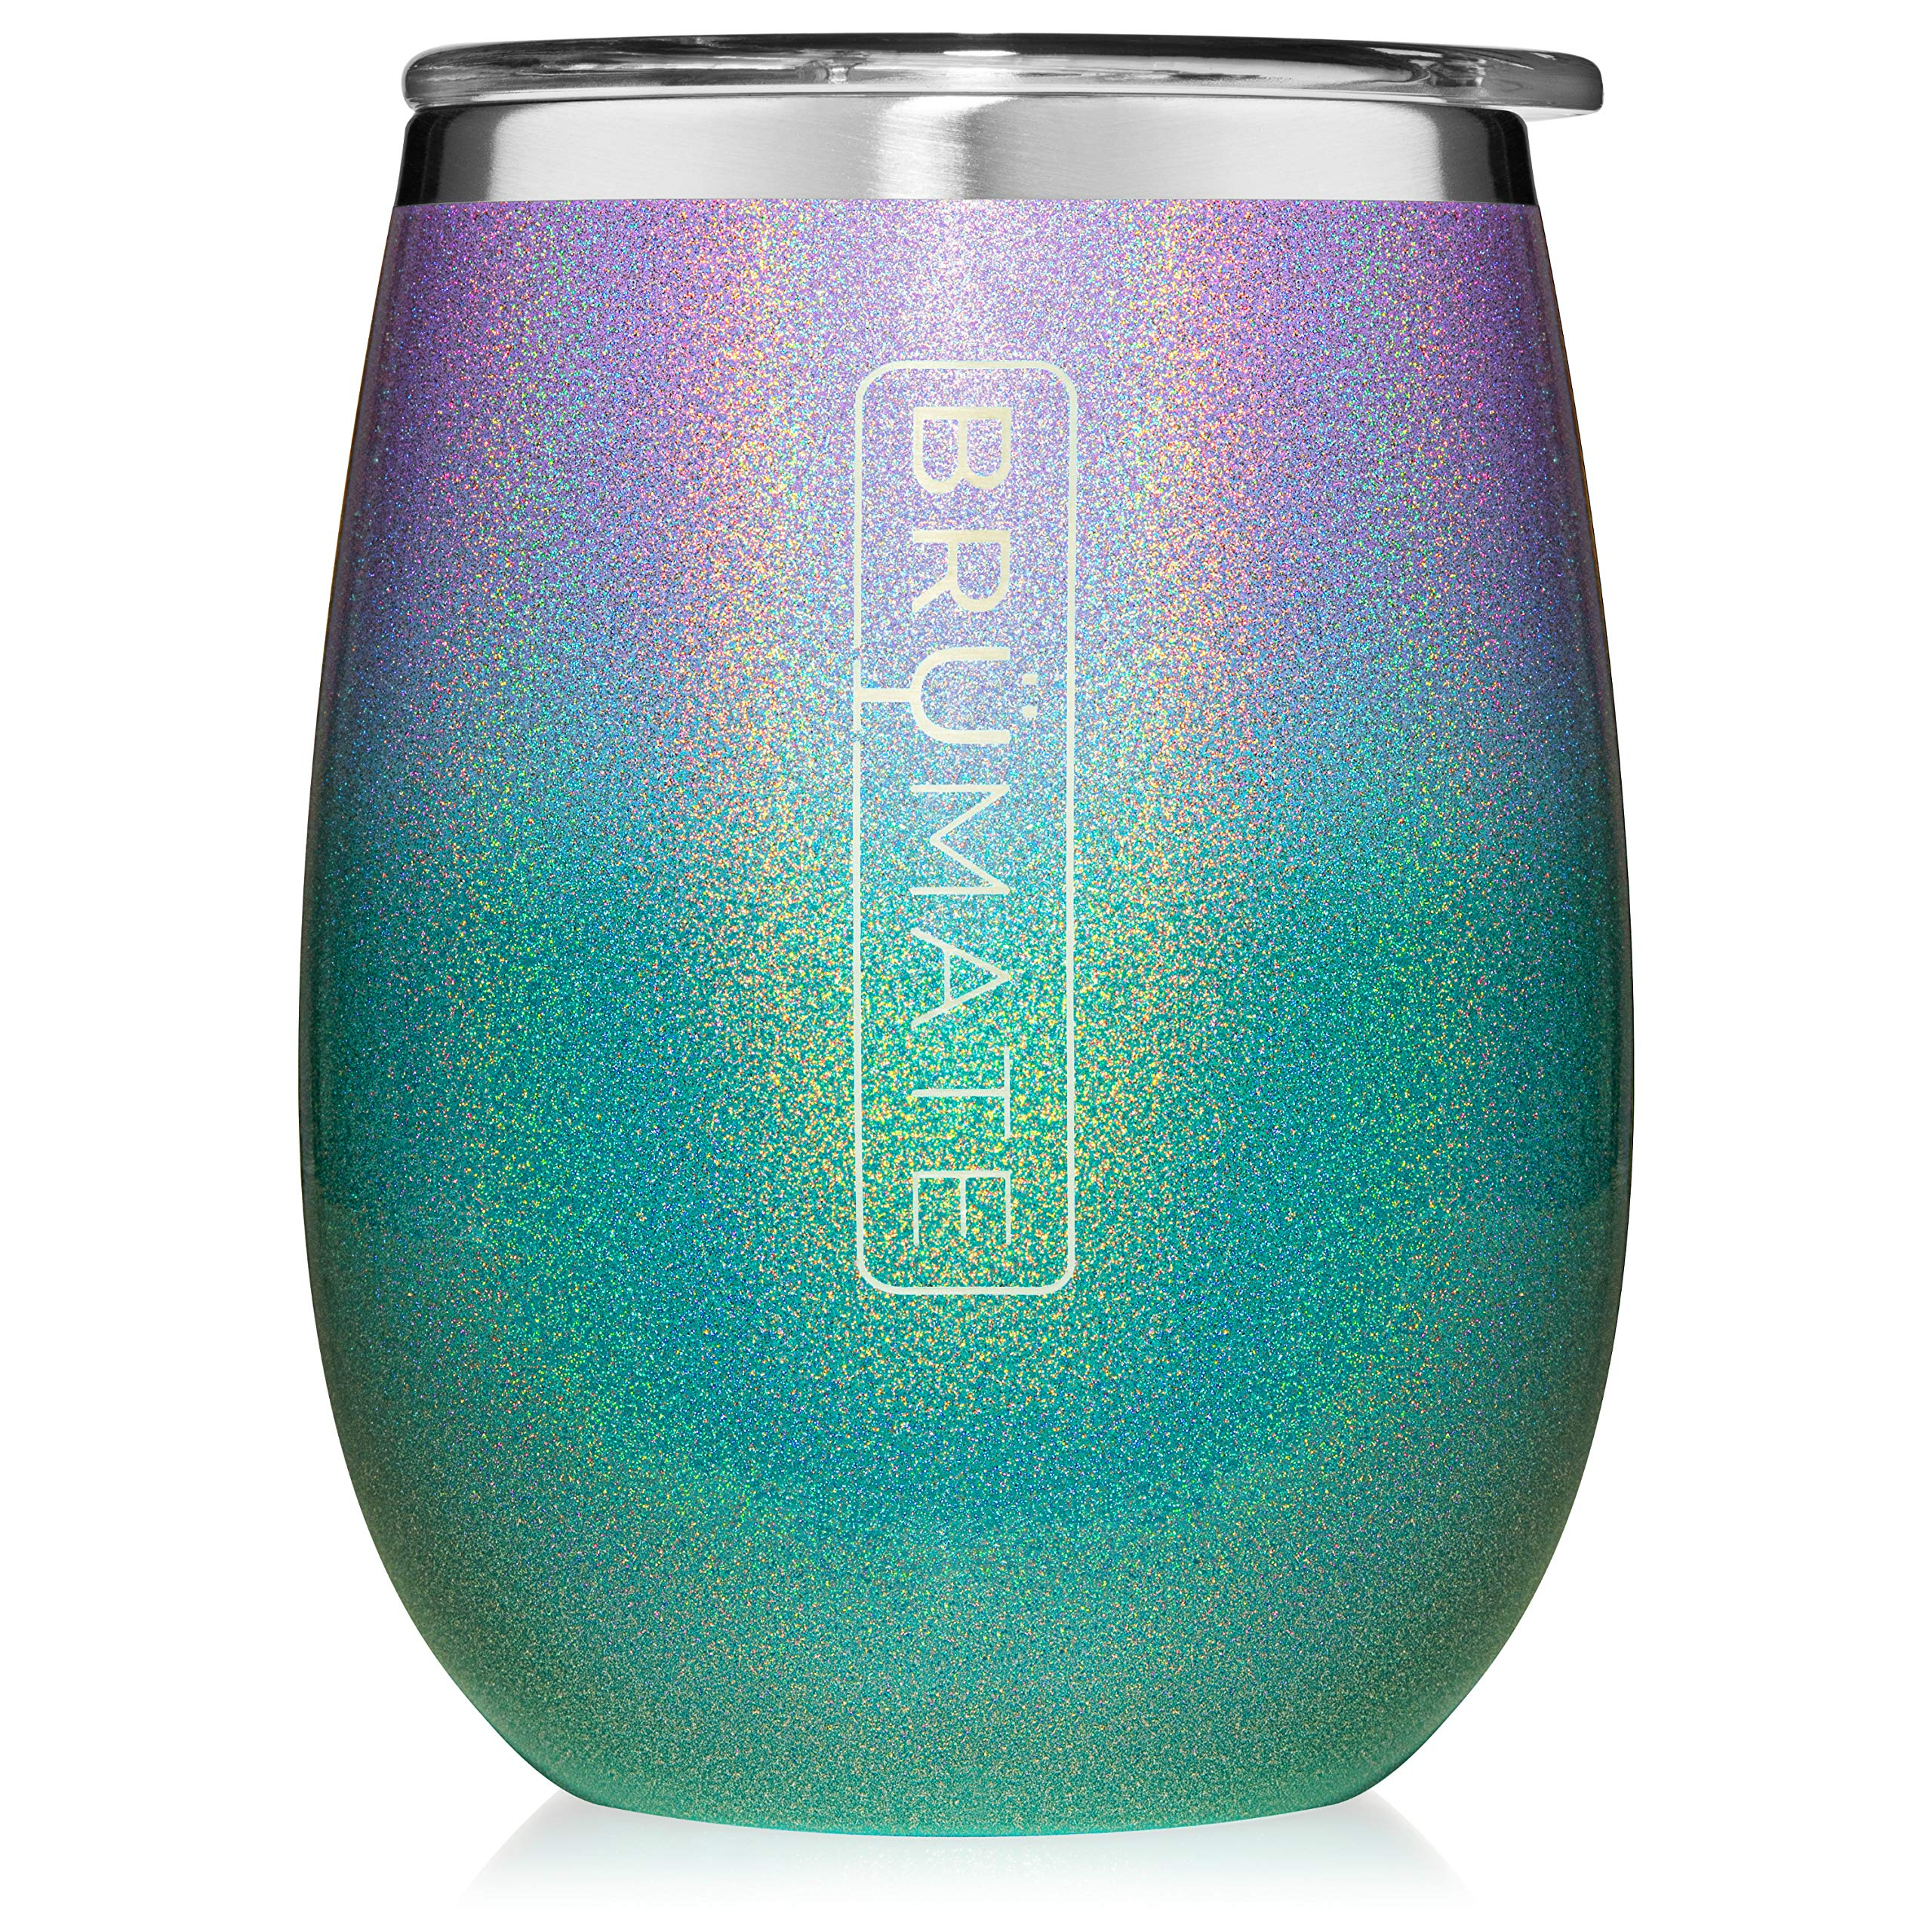 BrüMate Uncork'd XL 14oz Wine Glass Tumbler With Splash-proof Lid - Made With Vacuum Insulated Stainless Steel (Glitter Mermaid) by BrüMate